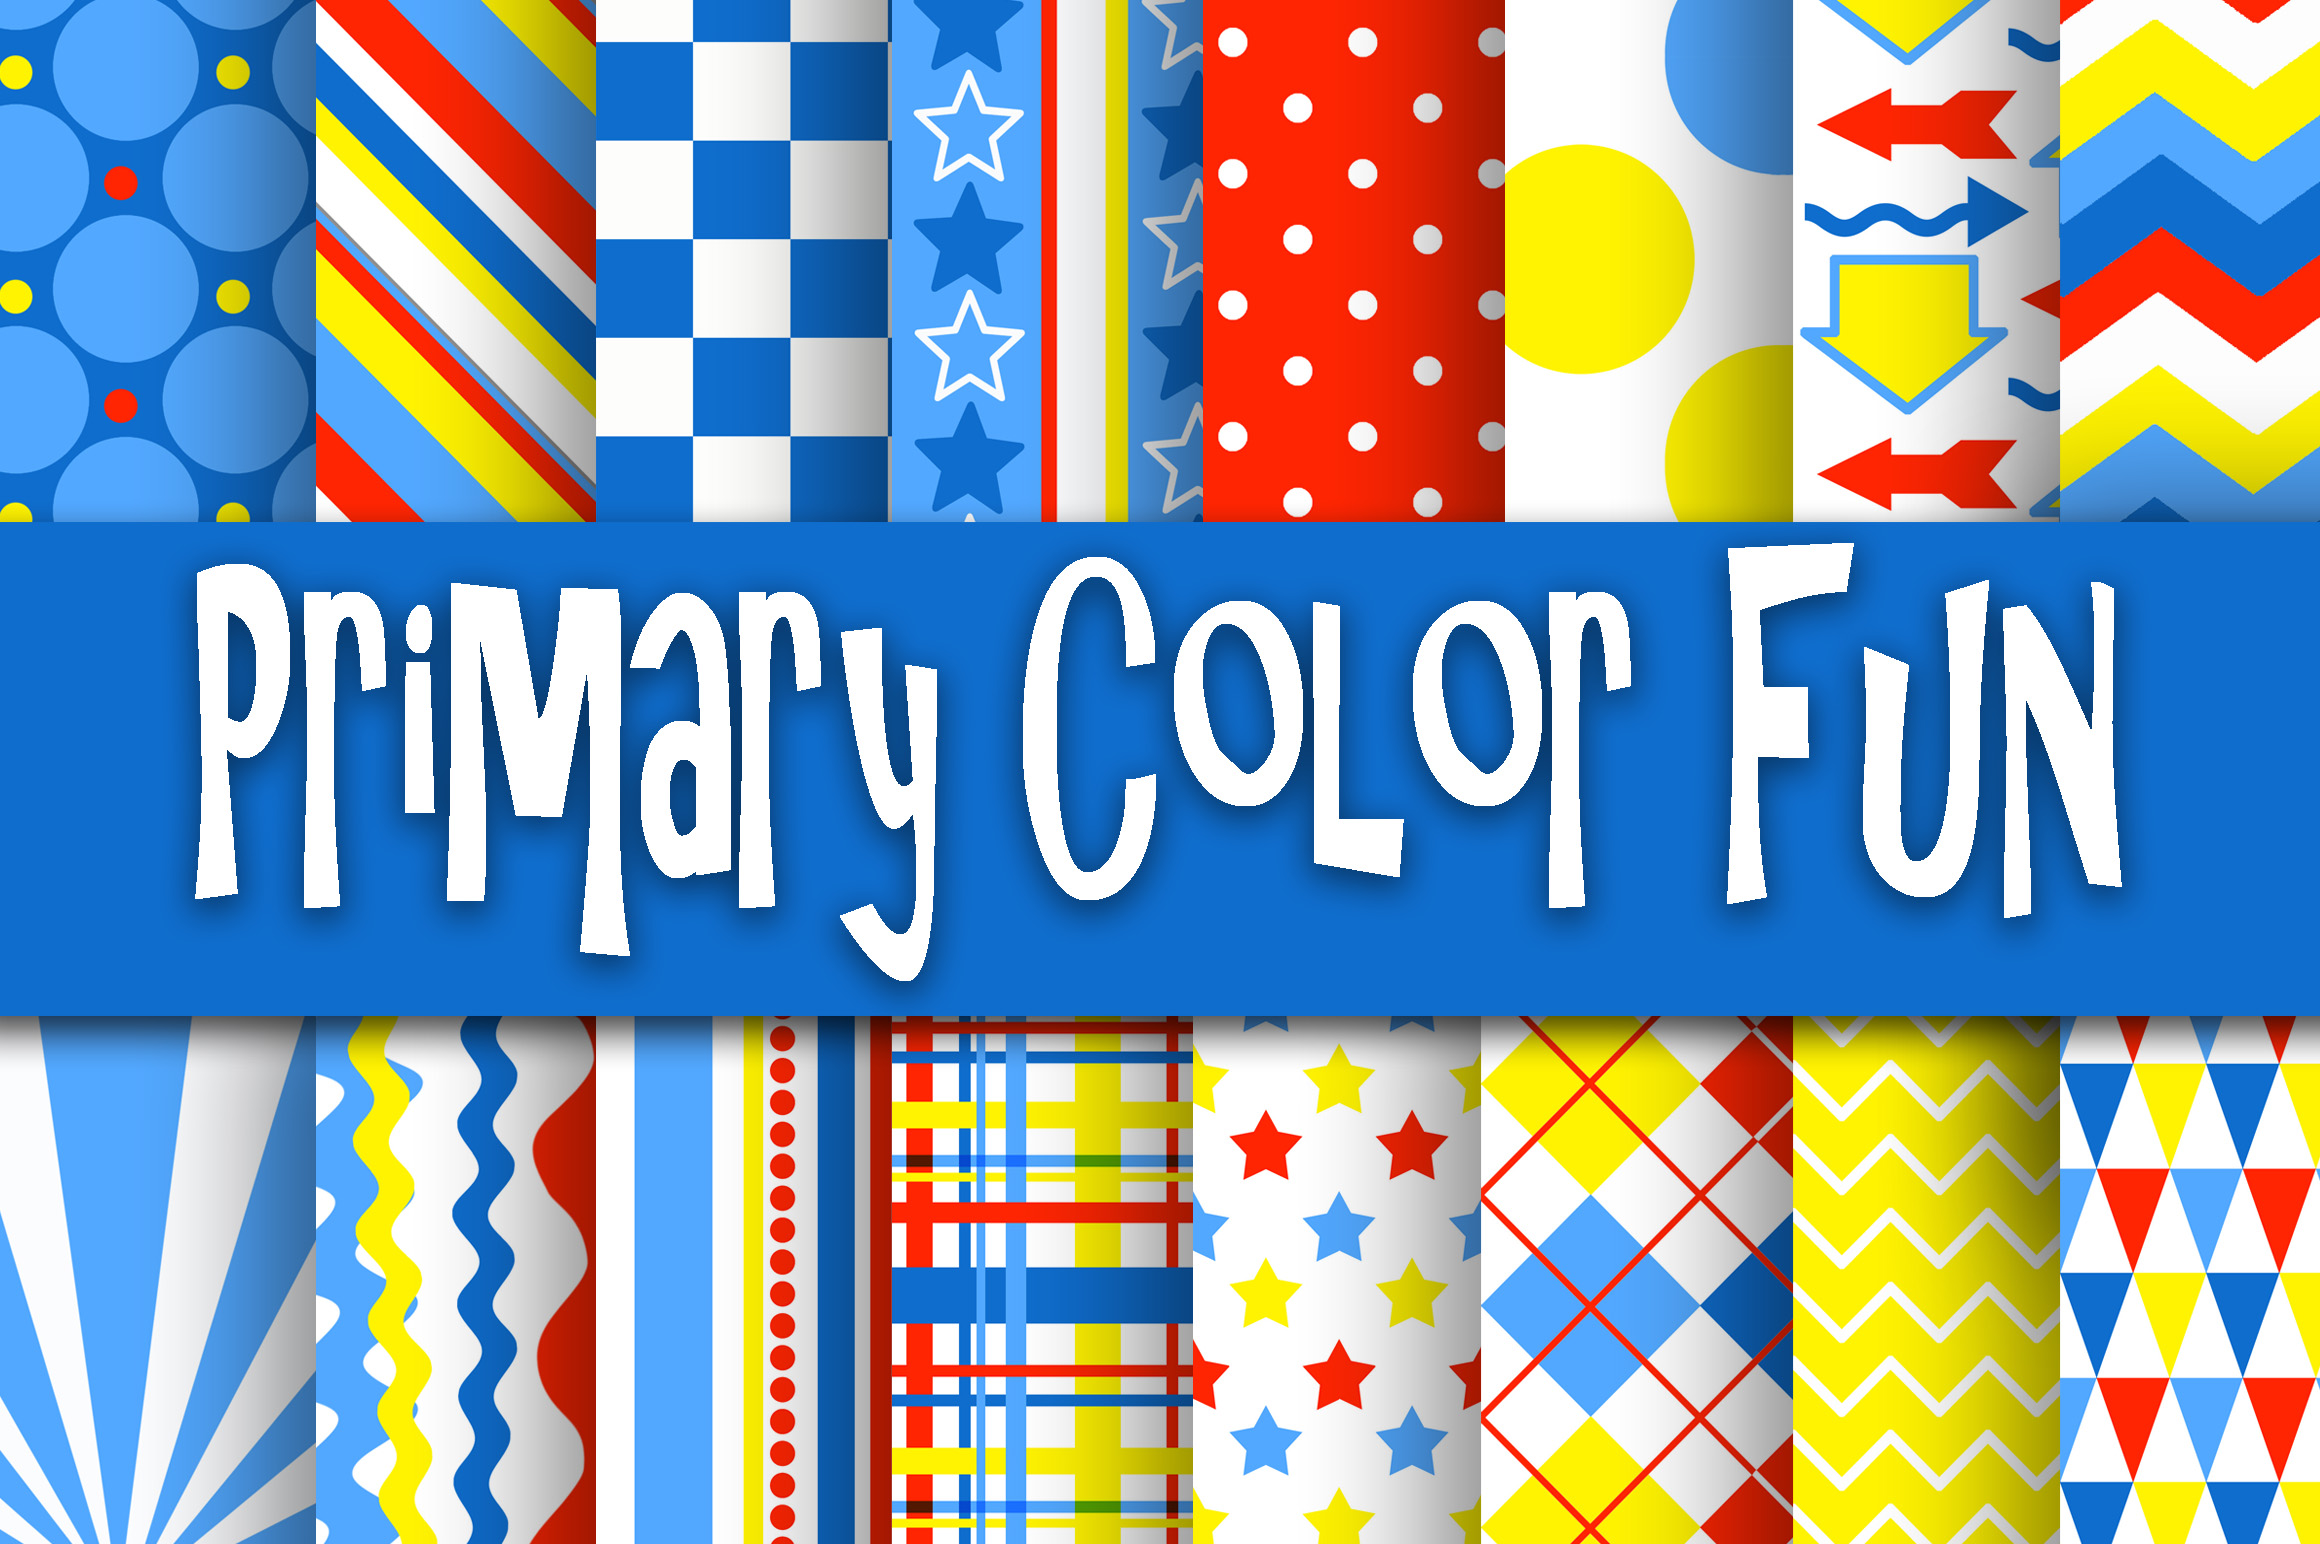 Primary Color Fun Digital Paper Graphic Backgrounds By oldmarketdesigns